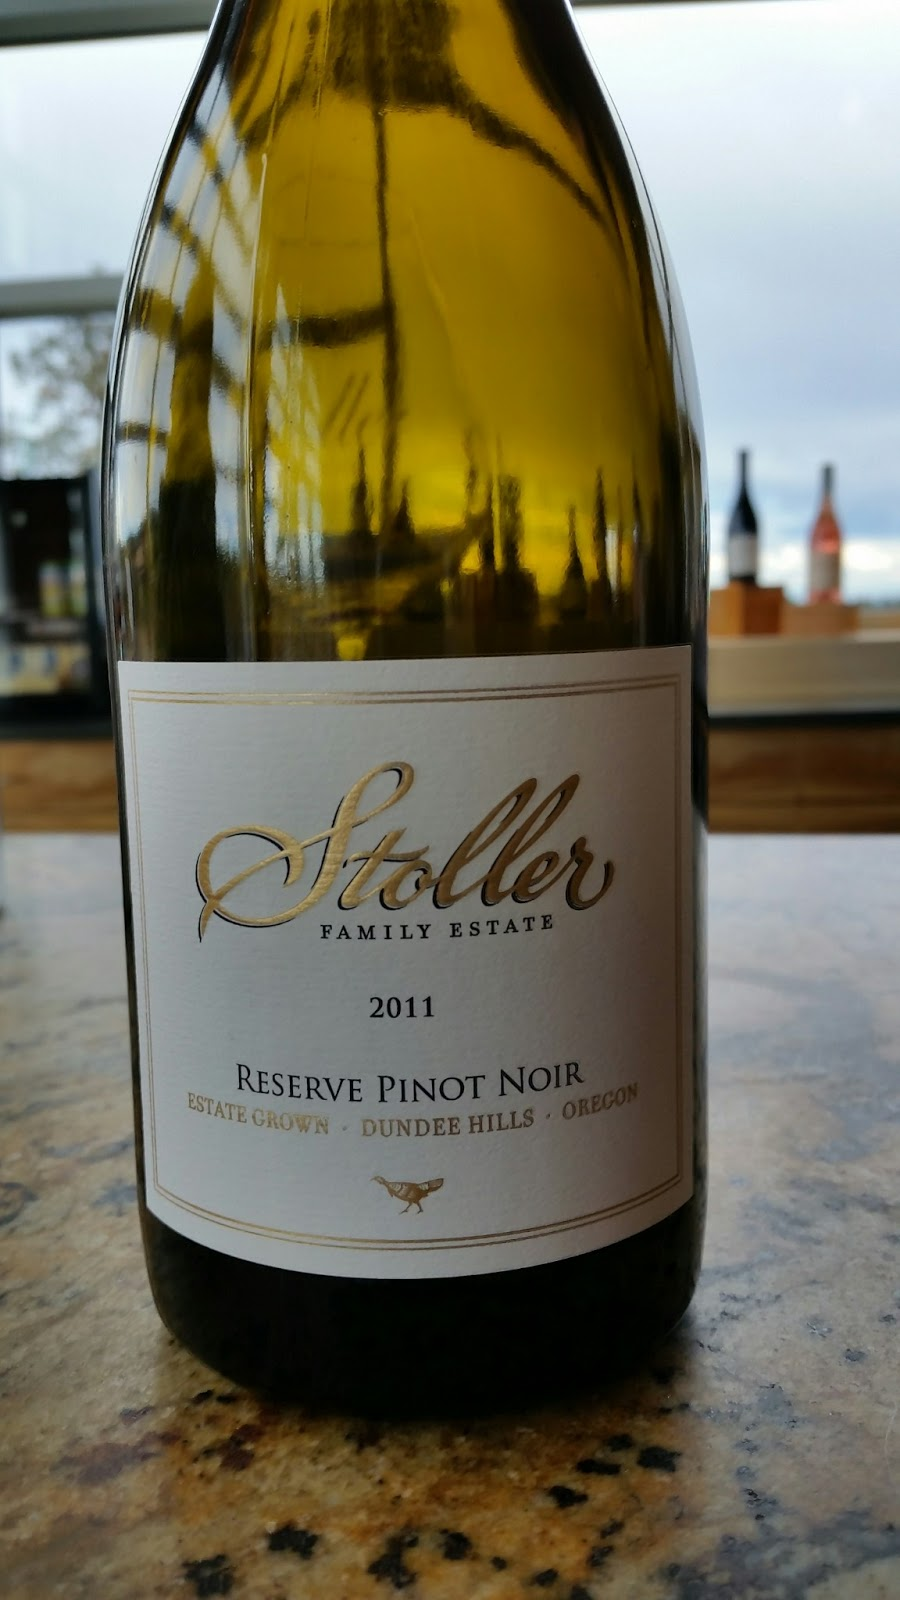 9a2f08a1c8 ... Estate makes very stylish, elegant wines - Chardonnay and Pinot Noir.  The 2011 Reserve Pinot Noir was my favorite. It's good value at $45 USD a  bottle, ...